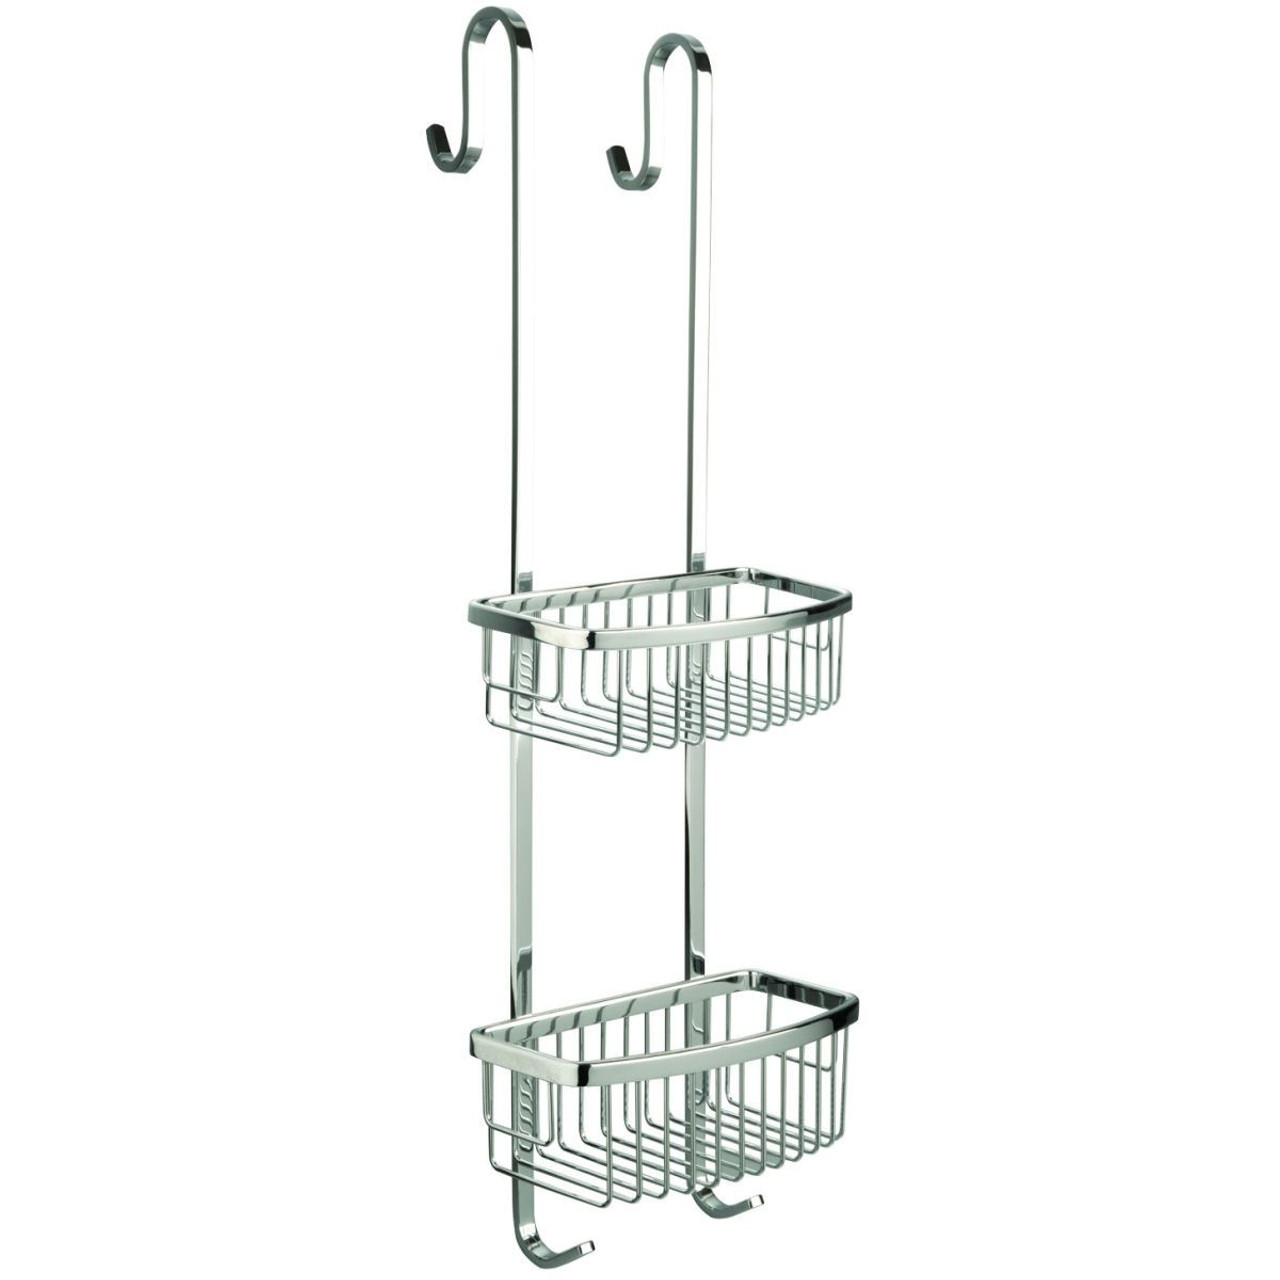 Miller Classic Bathroom Shower Caddy